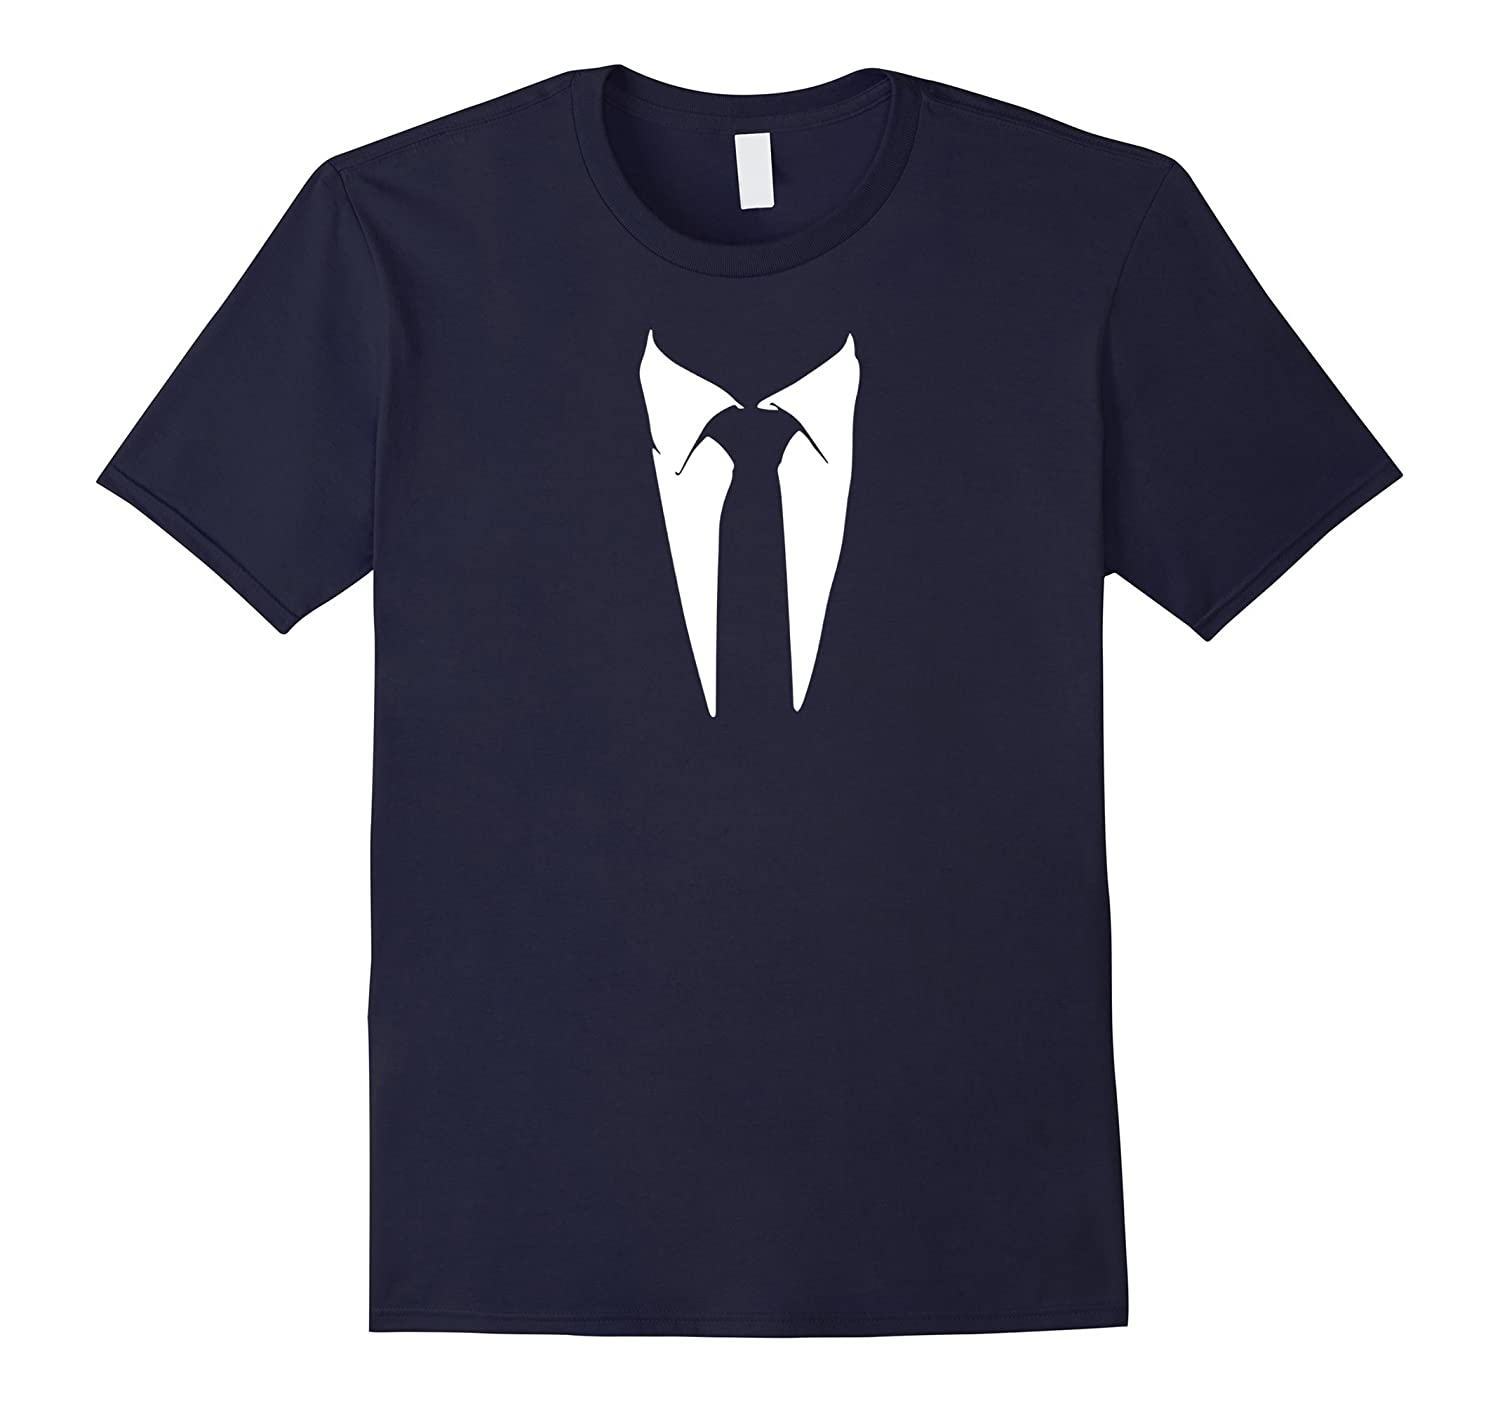 Tuxedo T-Shirt - Printed Suit & Tie Funny Business Shirt-BN